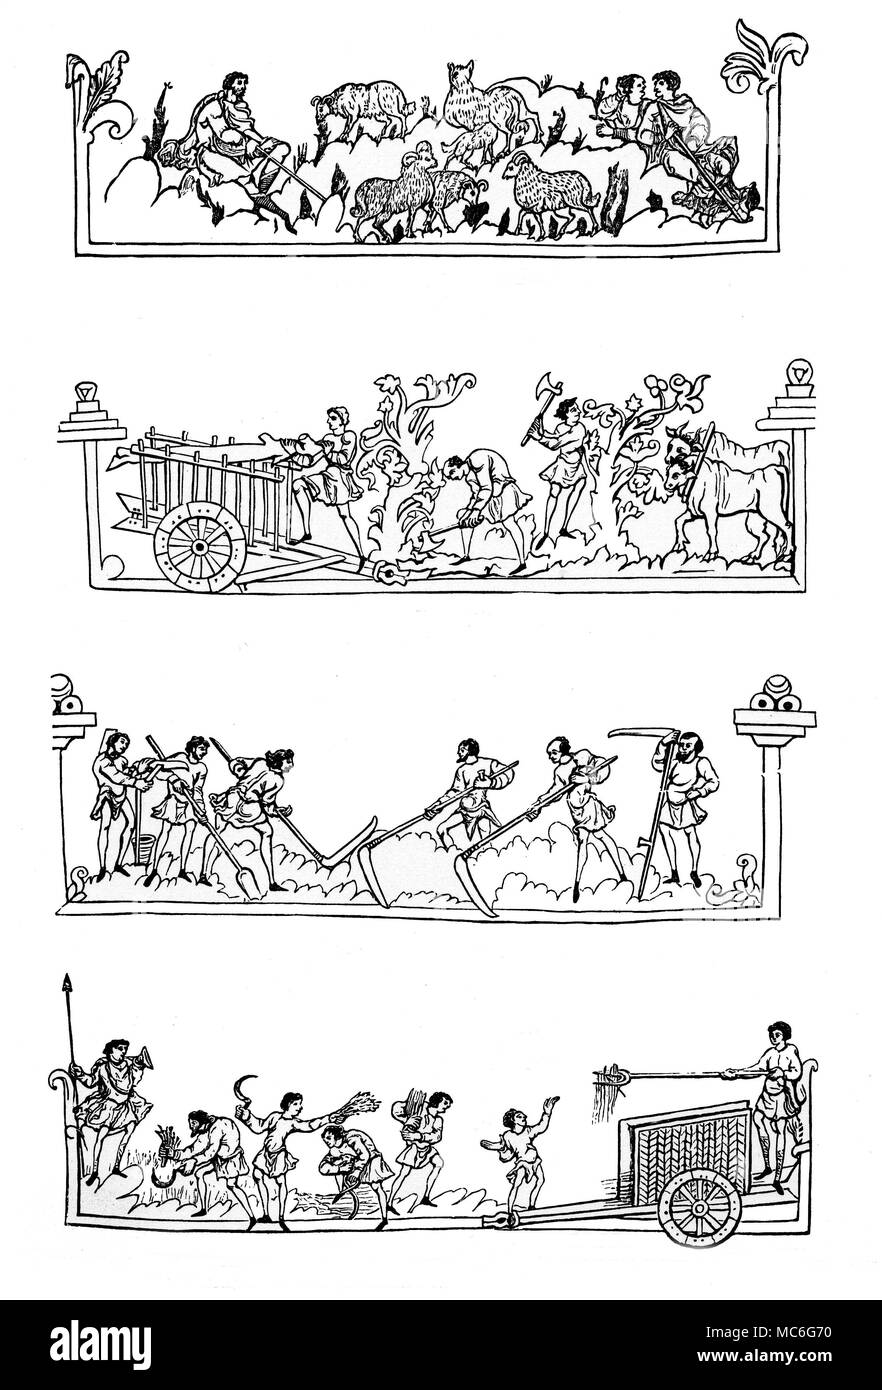 MONTHS - CALENDARS - MAY TO AUGUST Eleventh century Calendar, portraying the Months, and the activities associated with them, in a rural community.   The woodengravings are based on the Calendar in mss. Cottonian Ju. A. vi, in the British Library, made for the 1902 edition of J.R. Green, A Short History of the English People. [Reading from top, downwards]:  May, with the activity of guarding sheep.  June, with the communal activity of cutting and storing wood.  July, with the activity of haymaking.   August, with the activity of Harvesting. - Stock Image